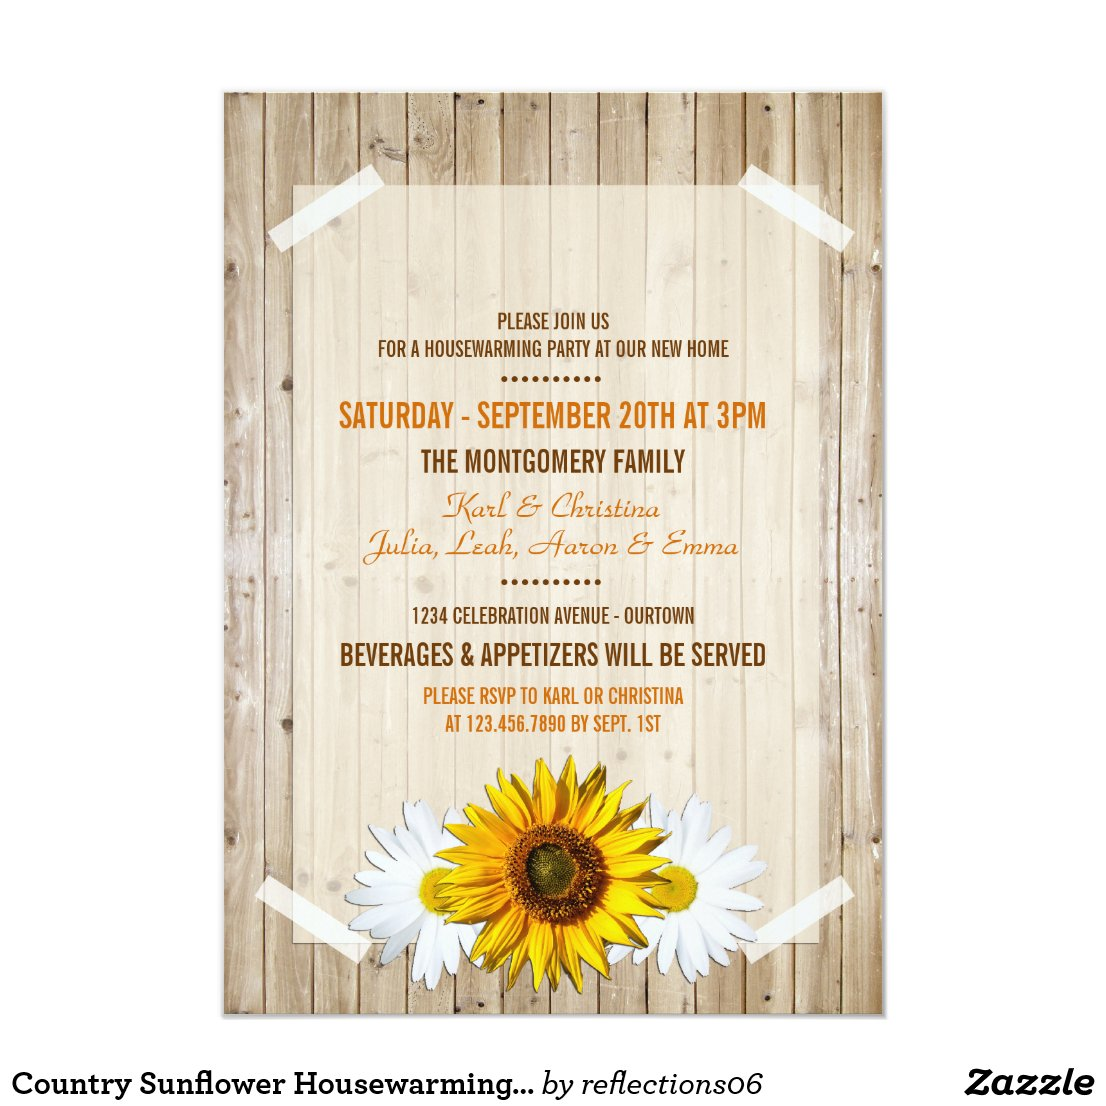 Country Sunflower Housewarming Party Invitation